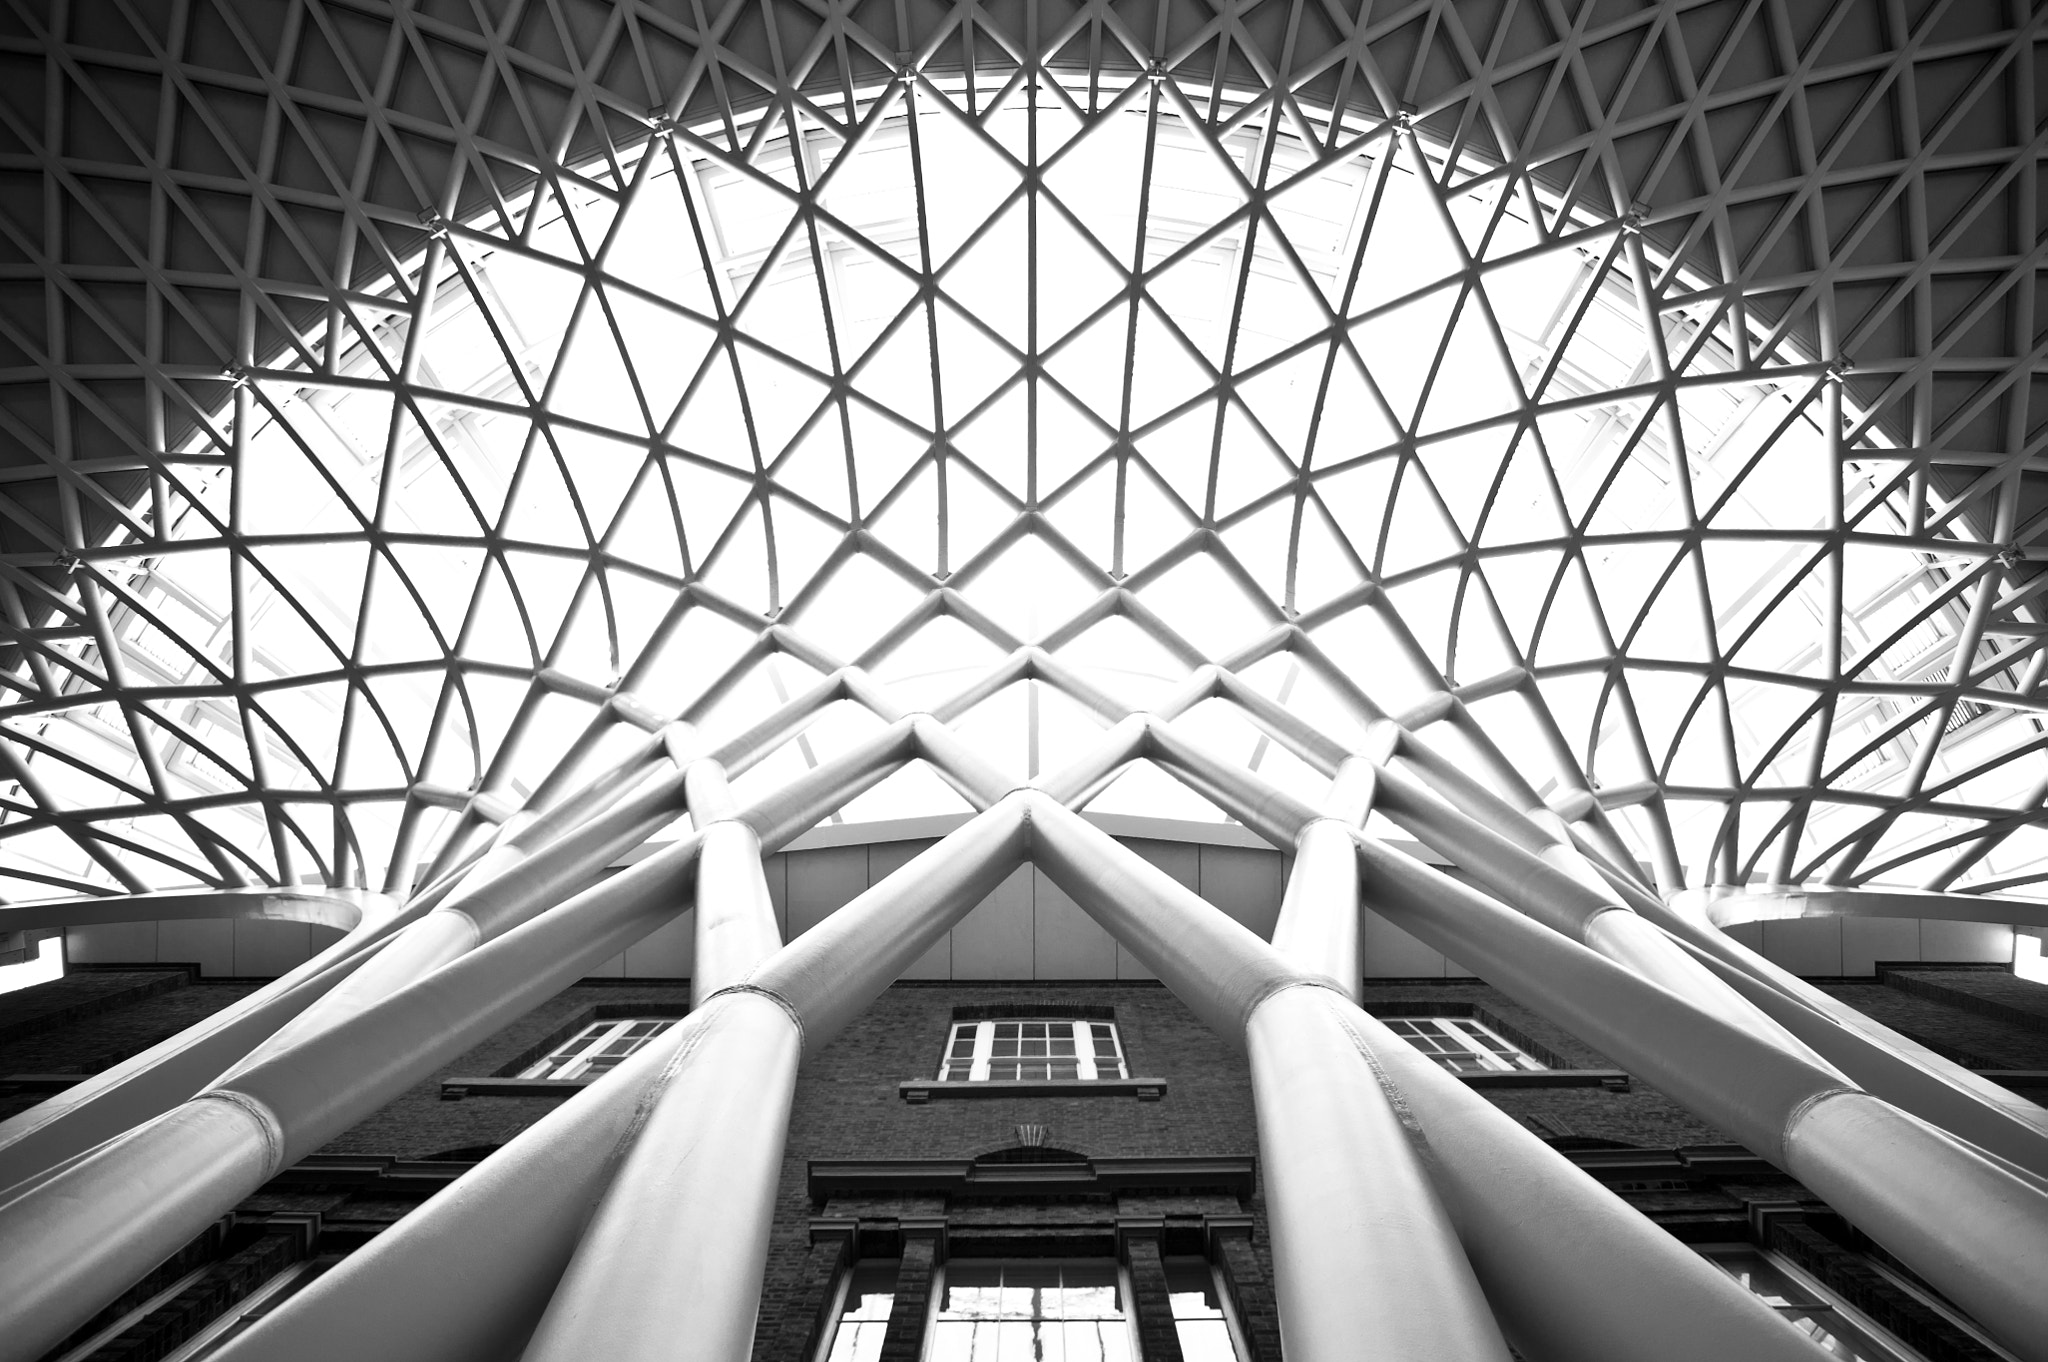 Photograph Kings Cross Station by TobesG on 500px